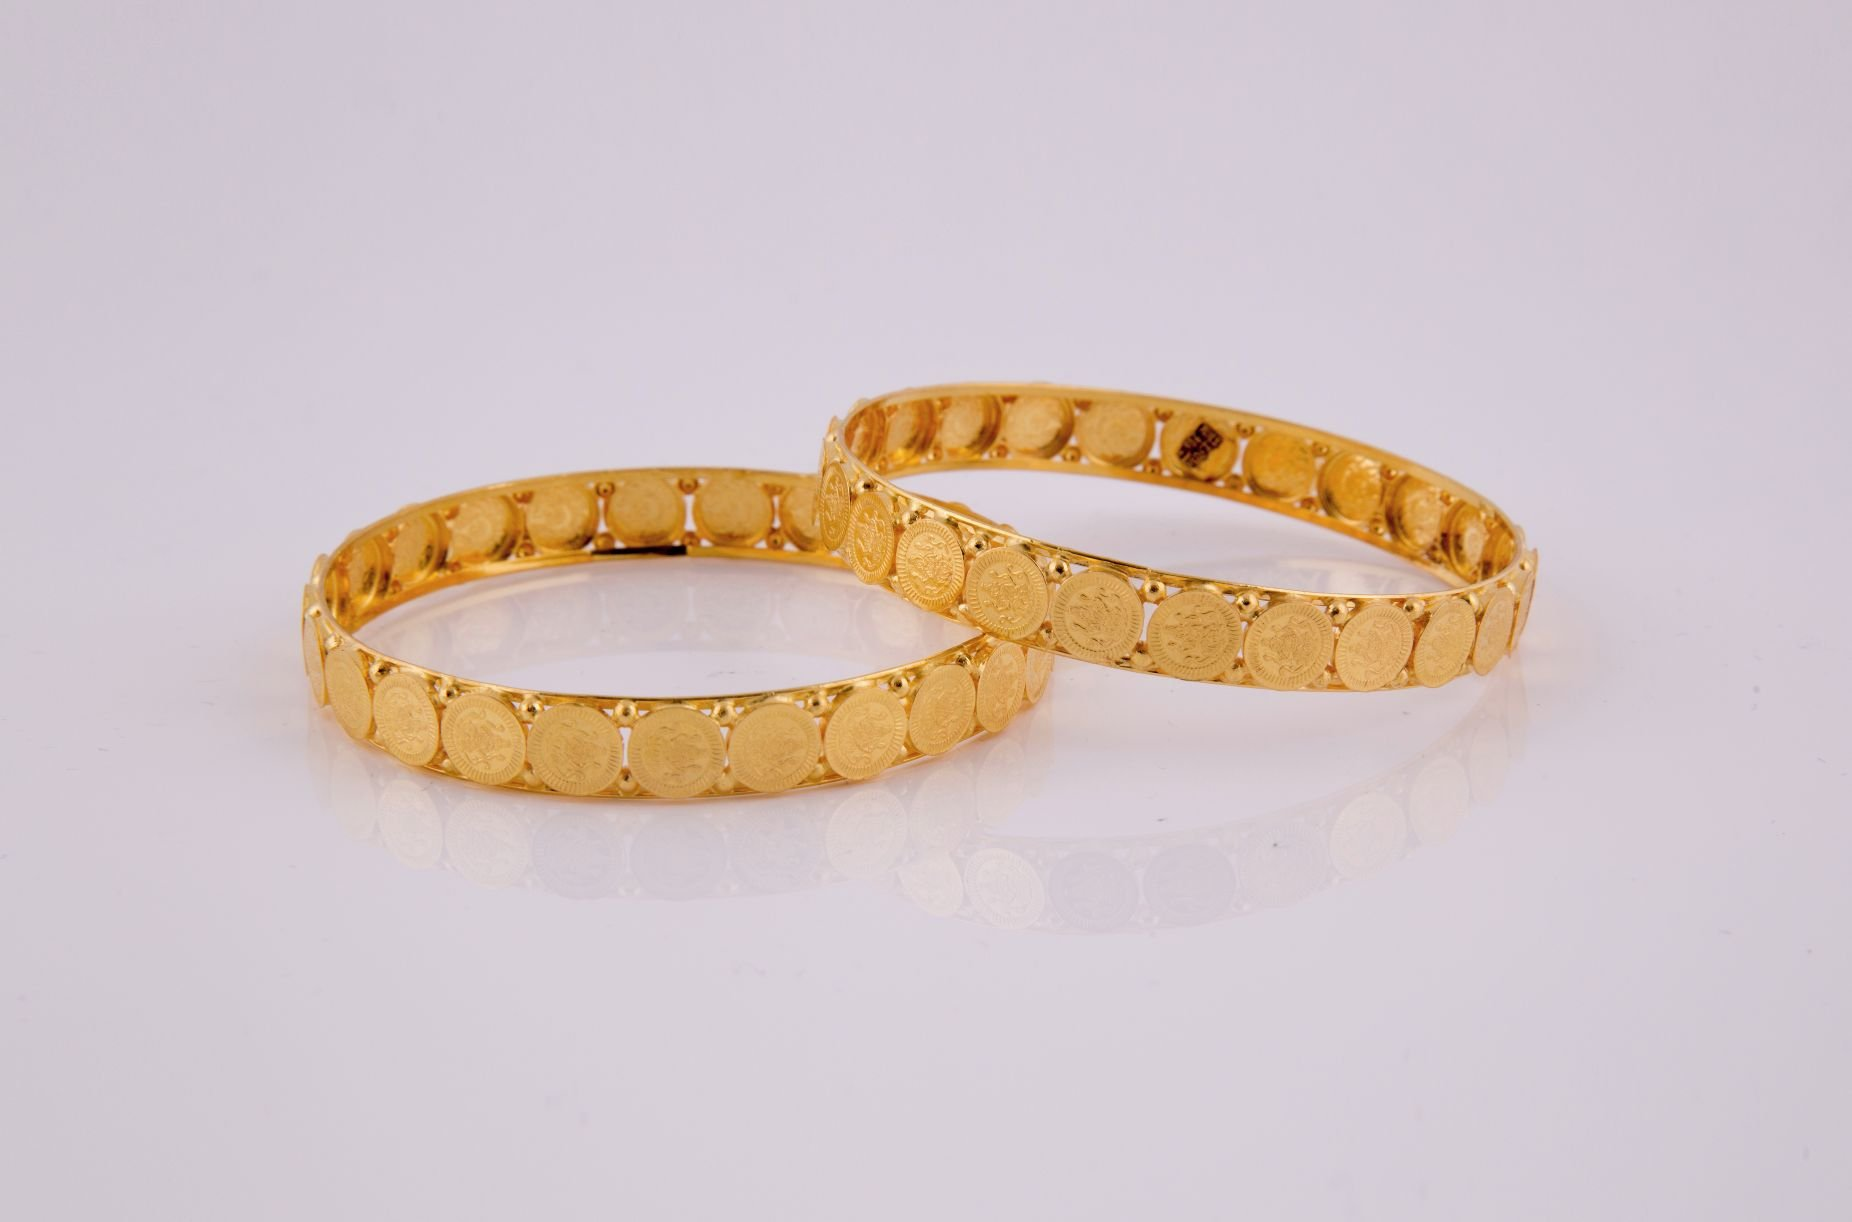 gold bangles cuff listing plain bracelet il simple filled fullxfull bangle zoom